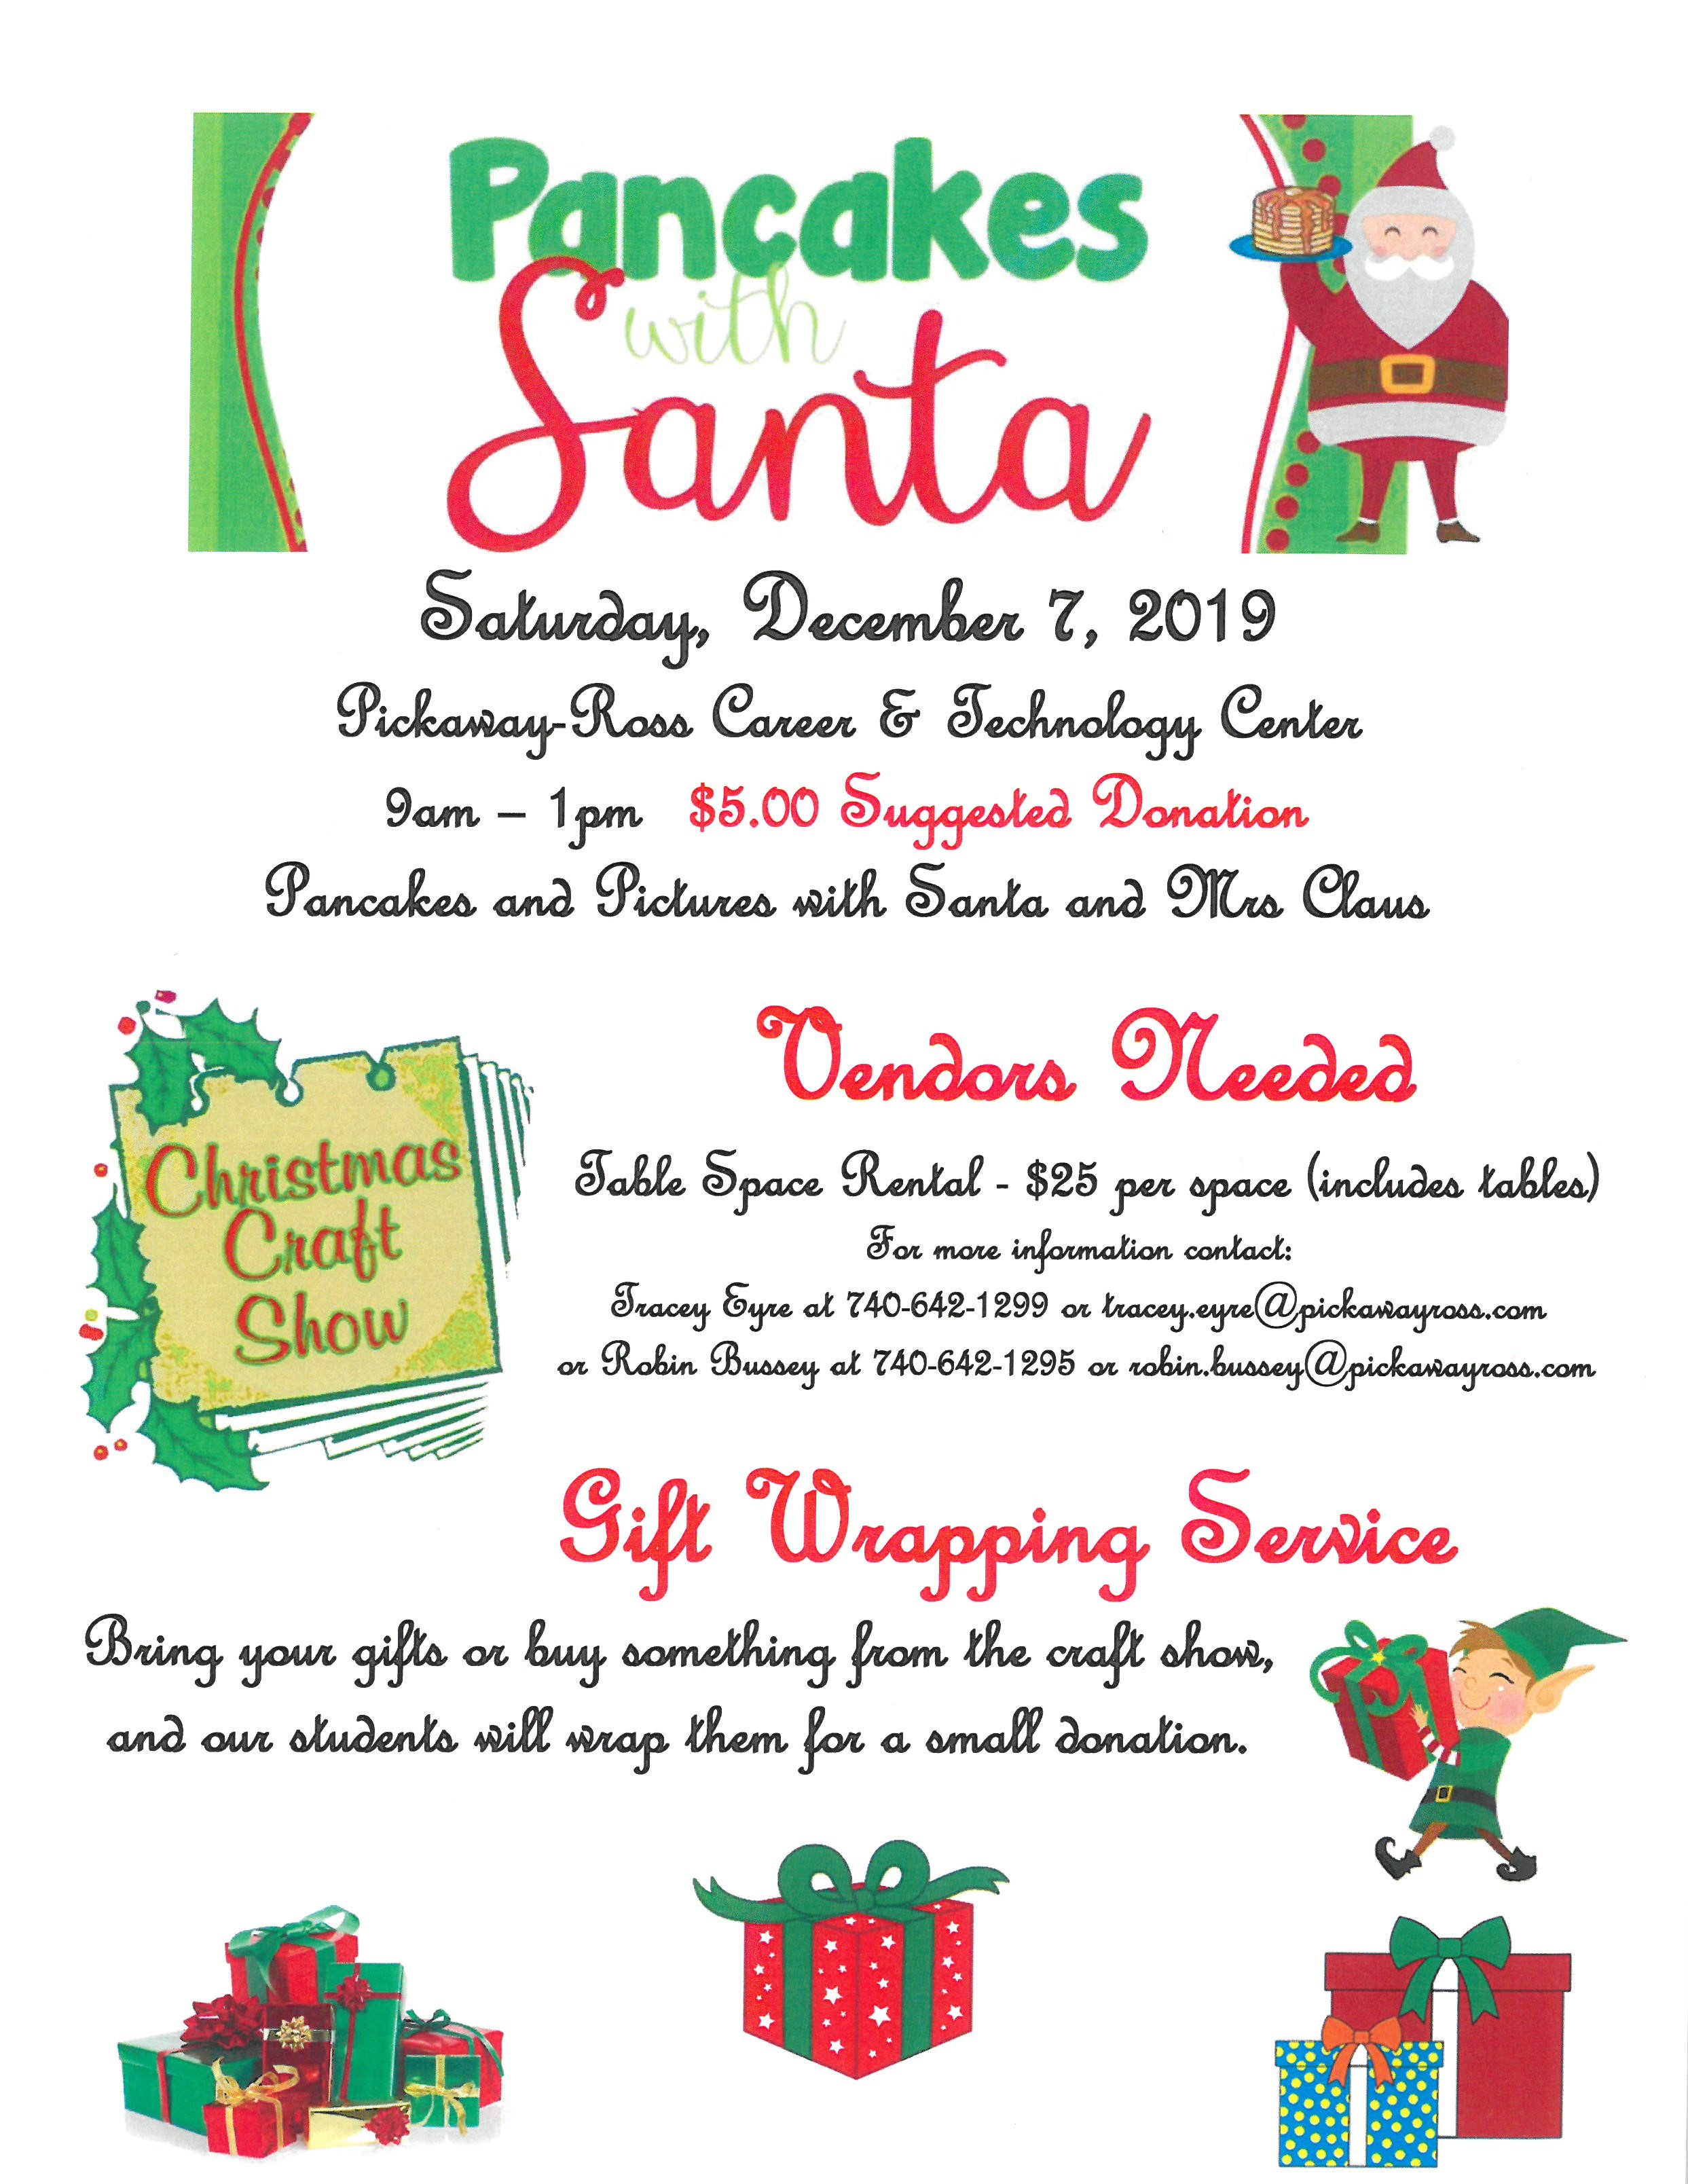 Pancakes with santa & craft show